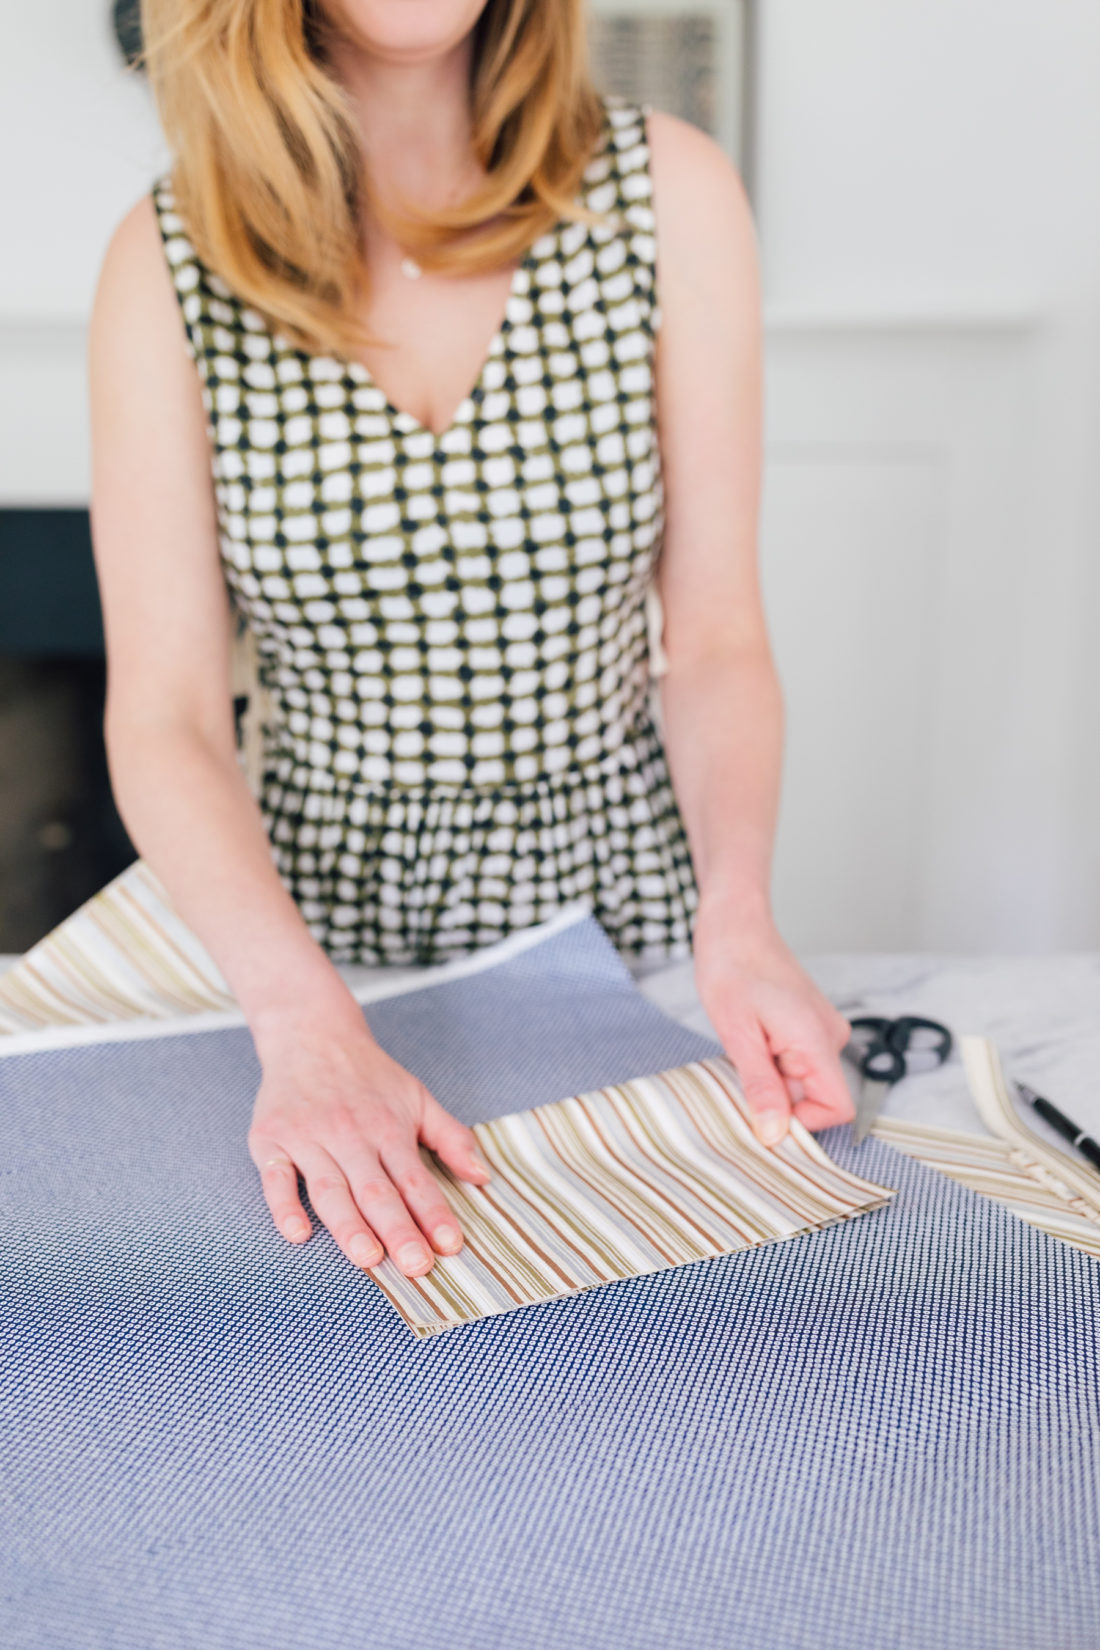 Eva Amurri Martino lays out patterned paper to make her husband a shirt and tie DIY Father's Day card